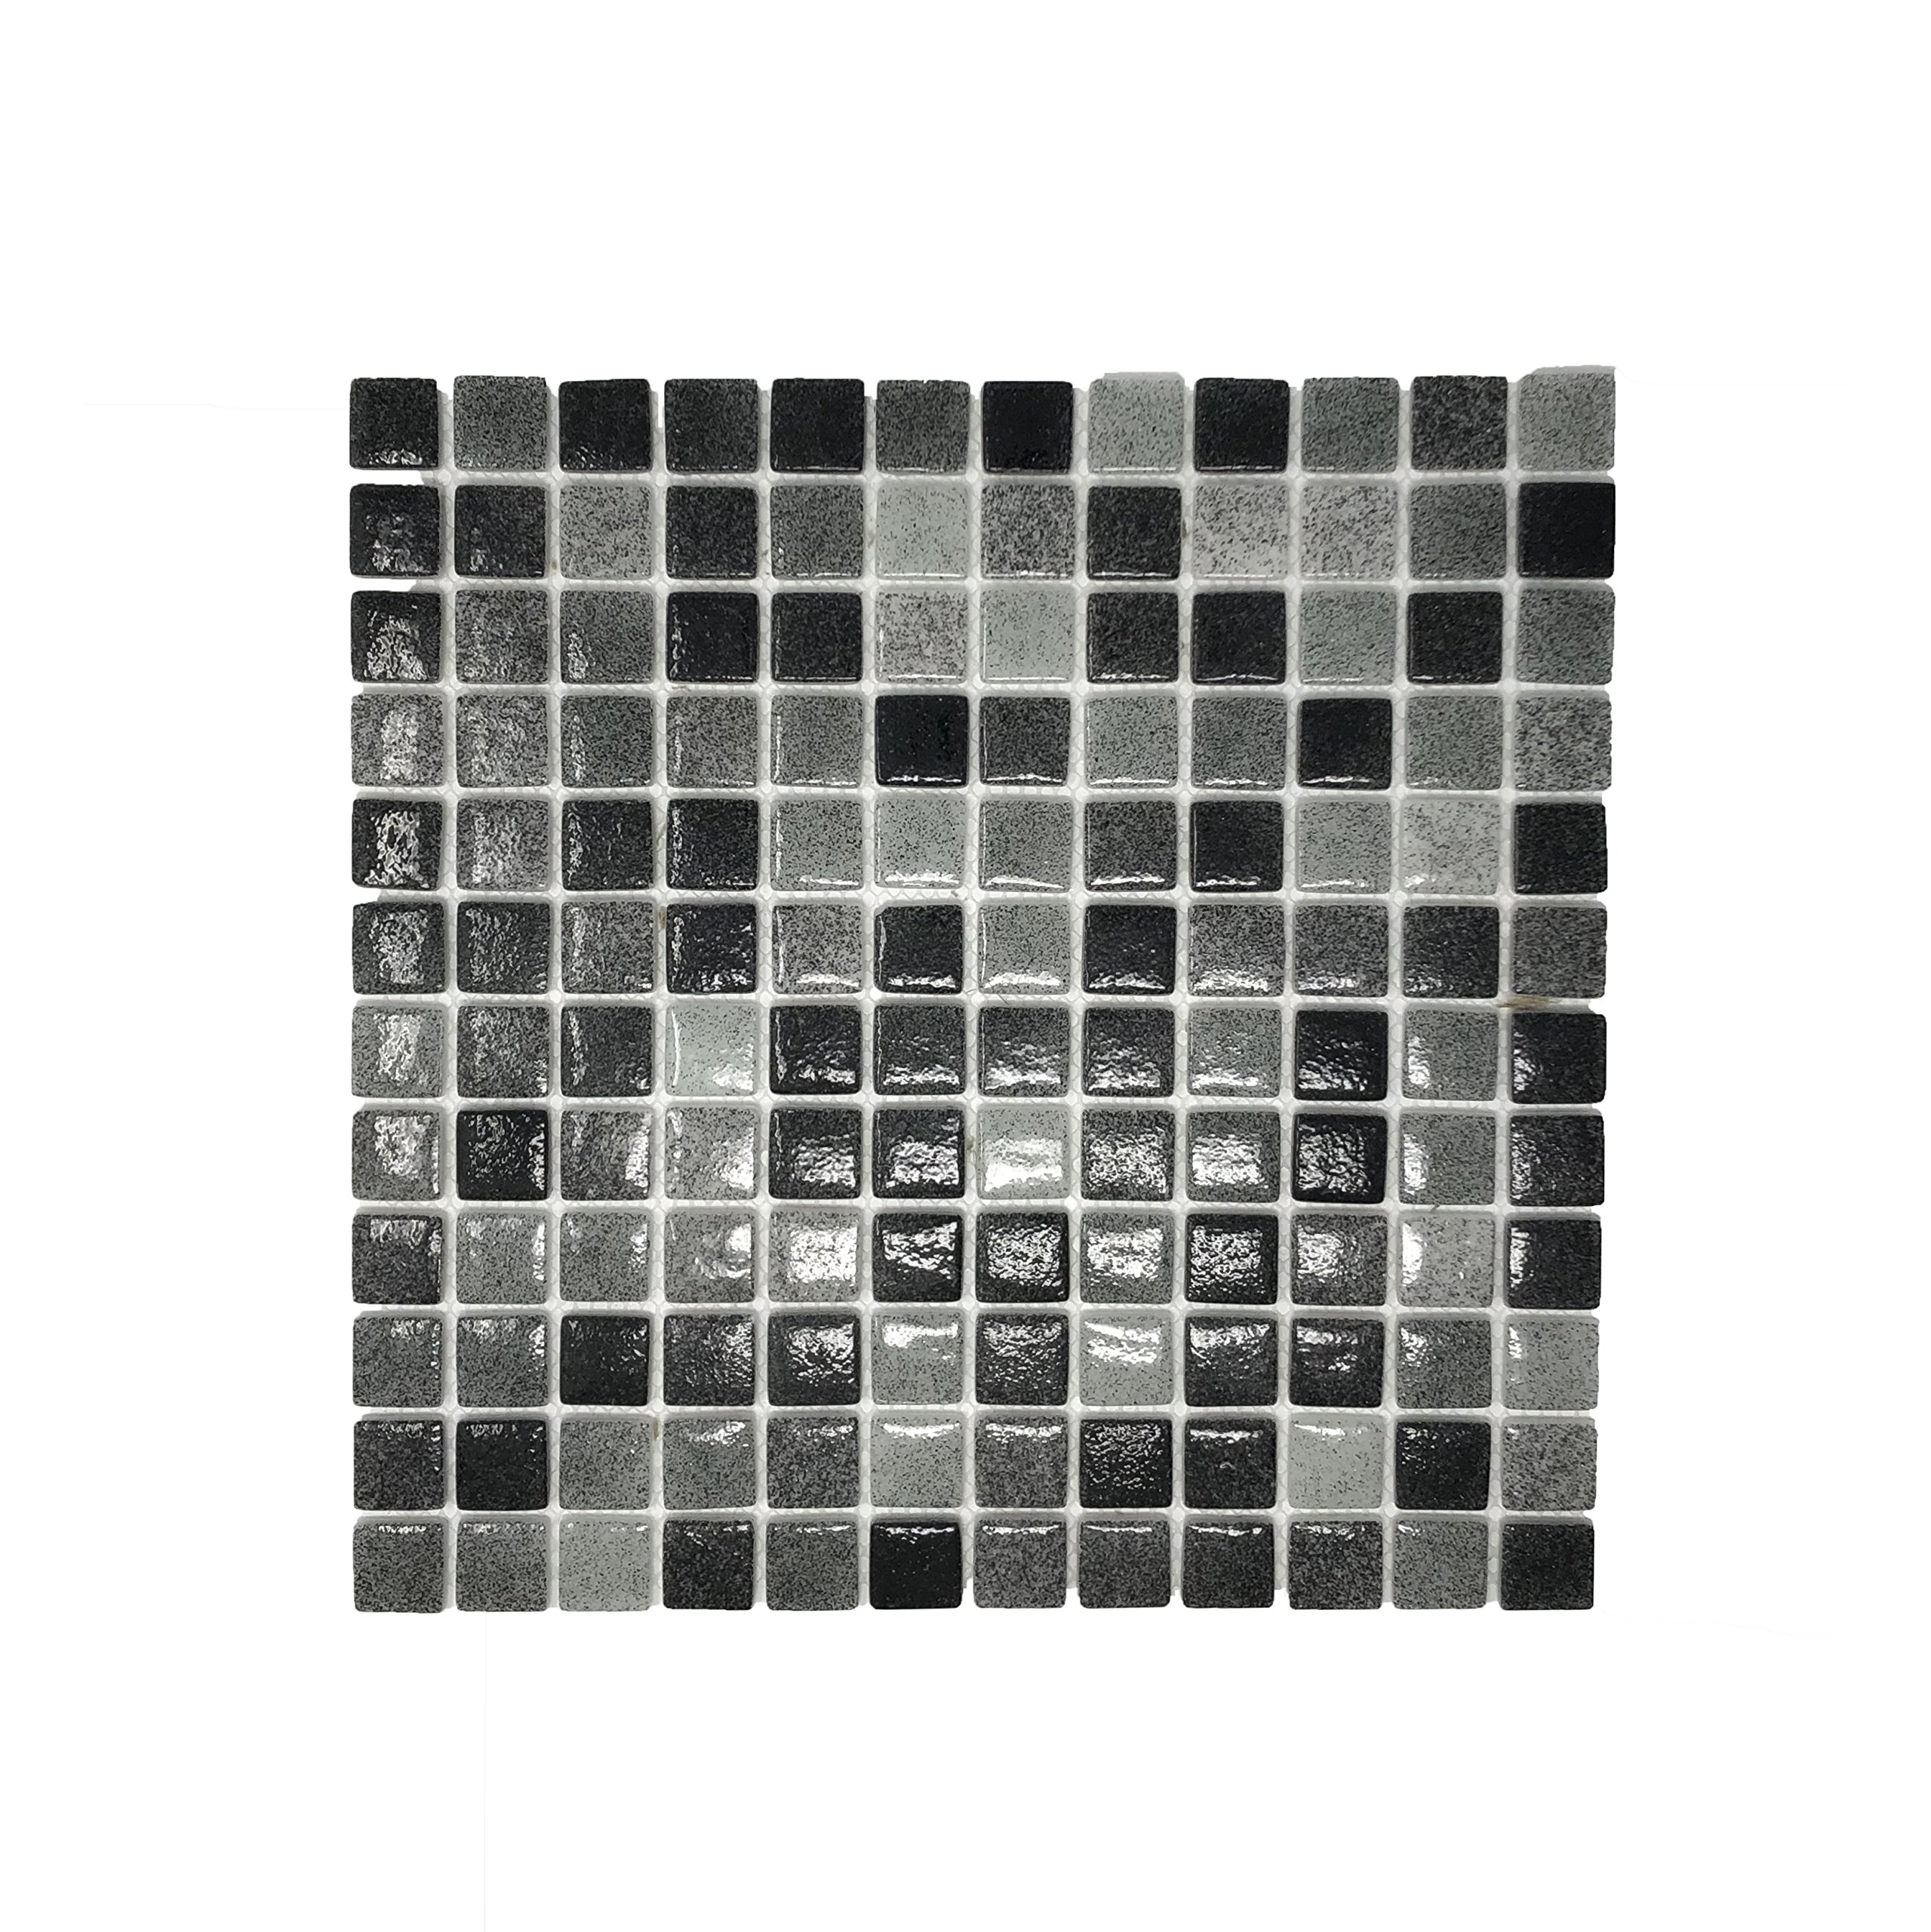 Mony Mosaic 15-Sheet Glass Mosaic for Kitchen Backsplashes, Bathroom Walls, Sauna Wall, Spa Tile, Pool Tile, Hamam Wall (Black Mix)